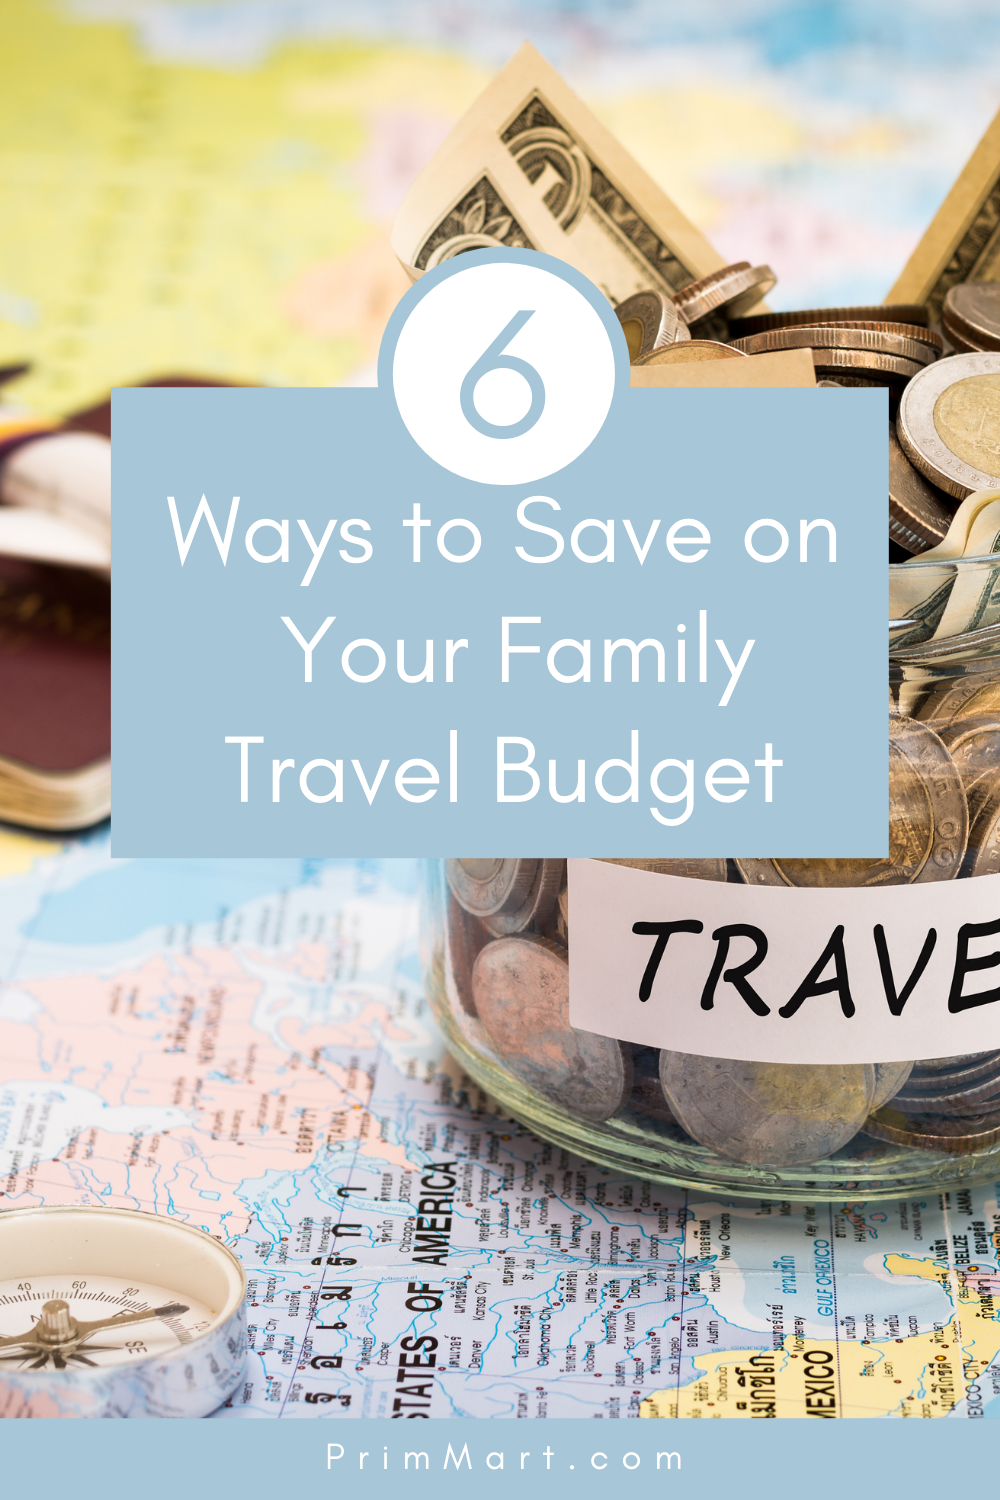 6 Ways to Save on Your Family Travel Budget